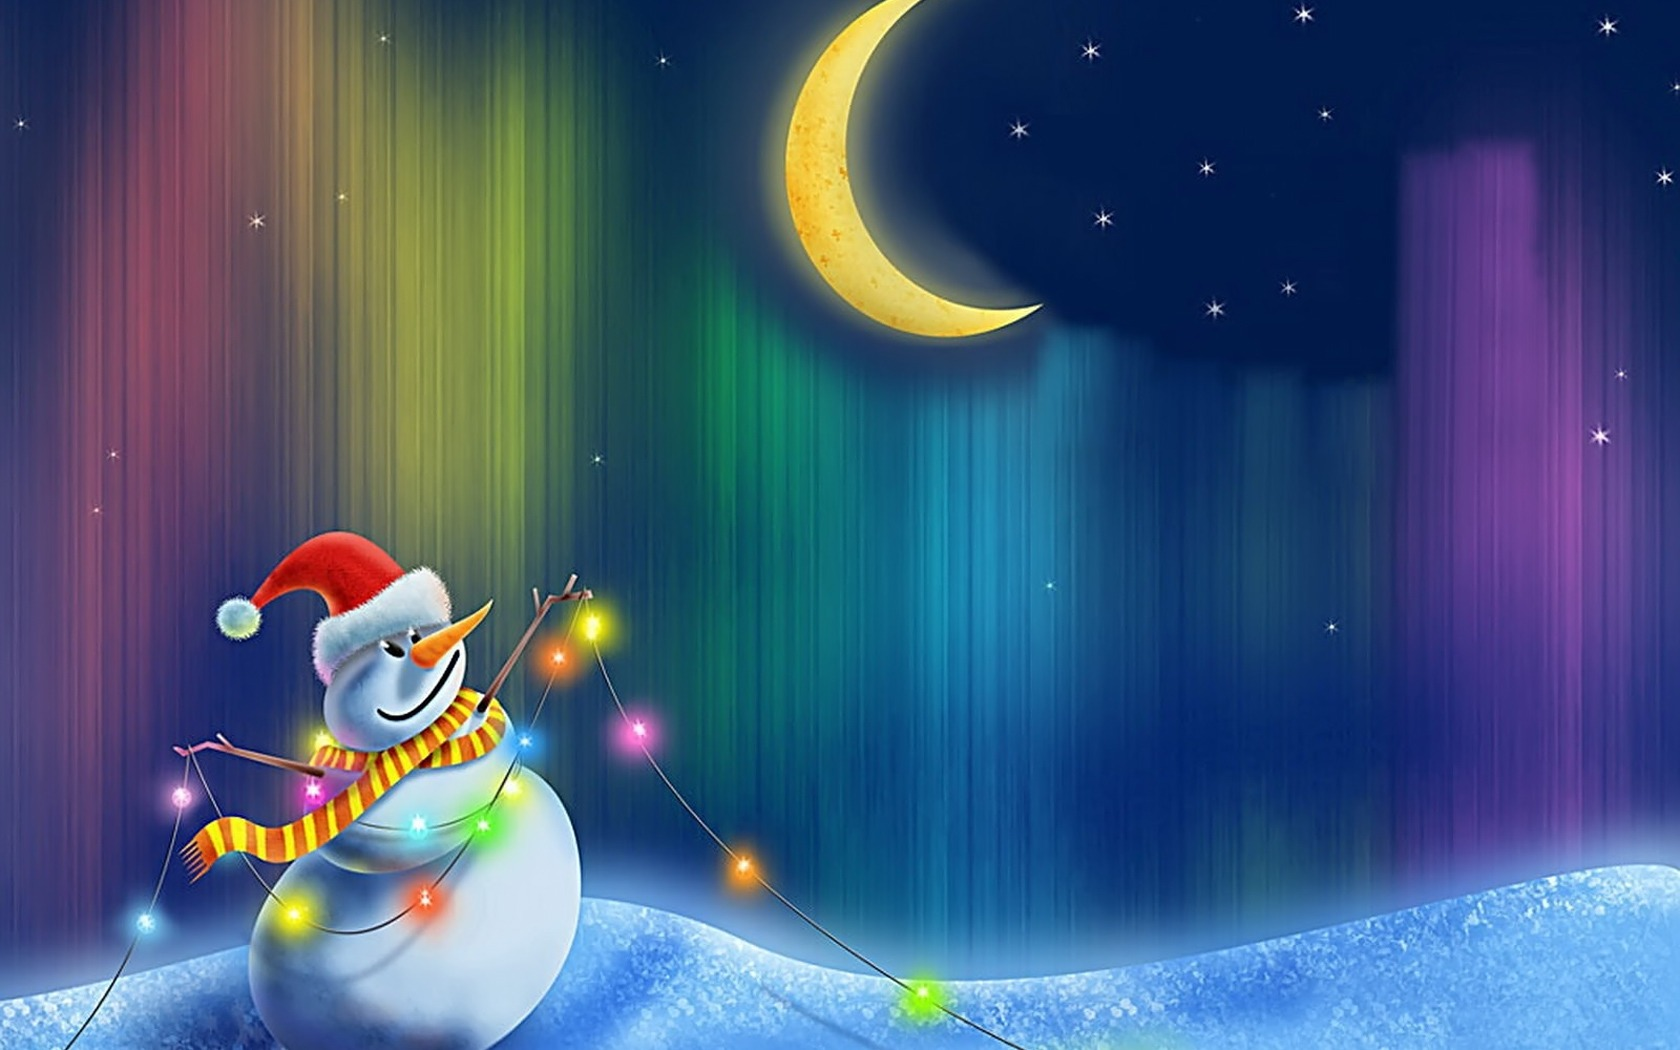 Christmas Wallpapers Animated Hd Wallpapers Download 1680x1050